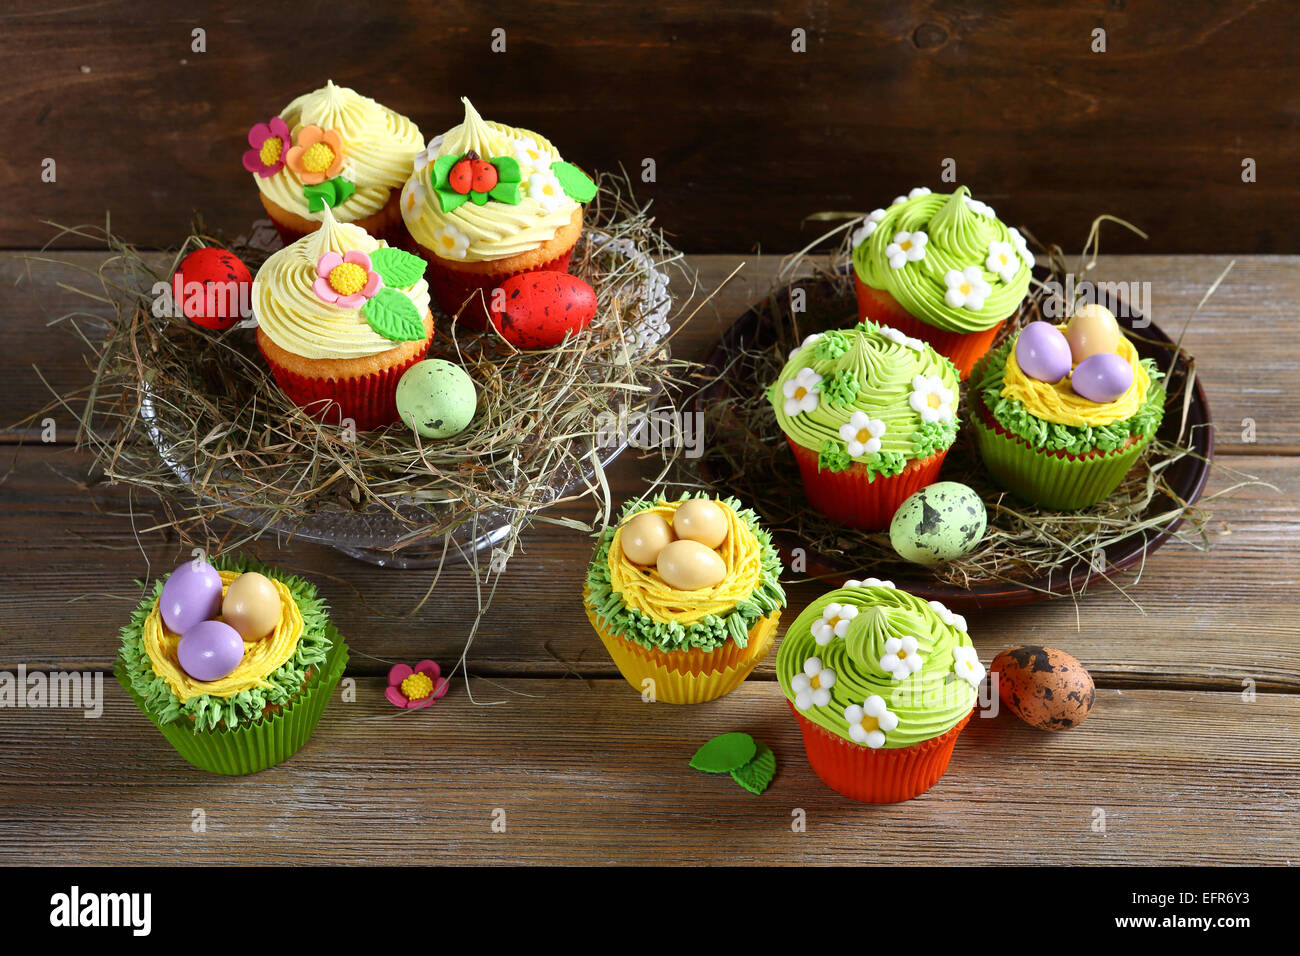 Set of Easter cupcakes, festive food - Stock Image